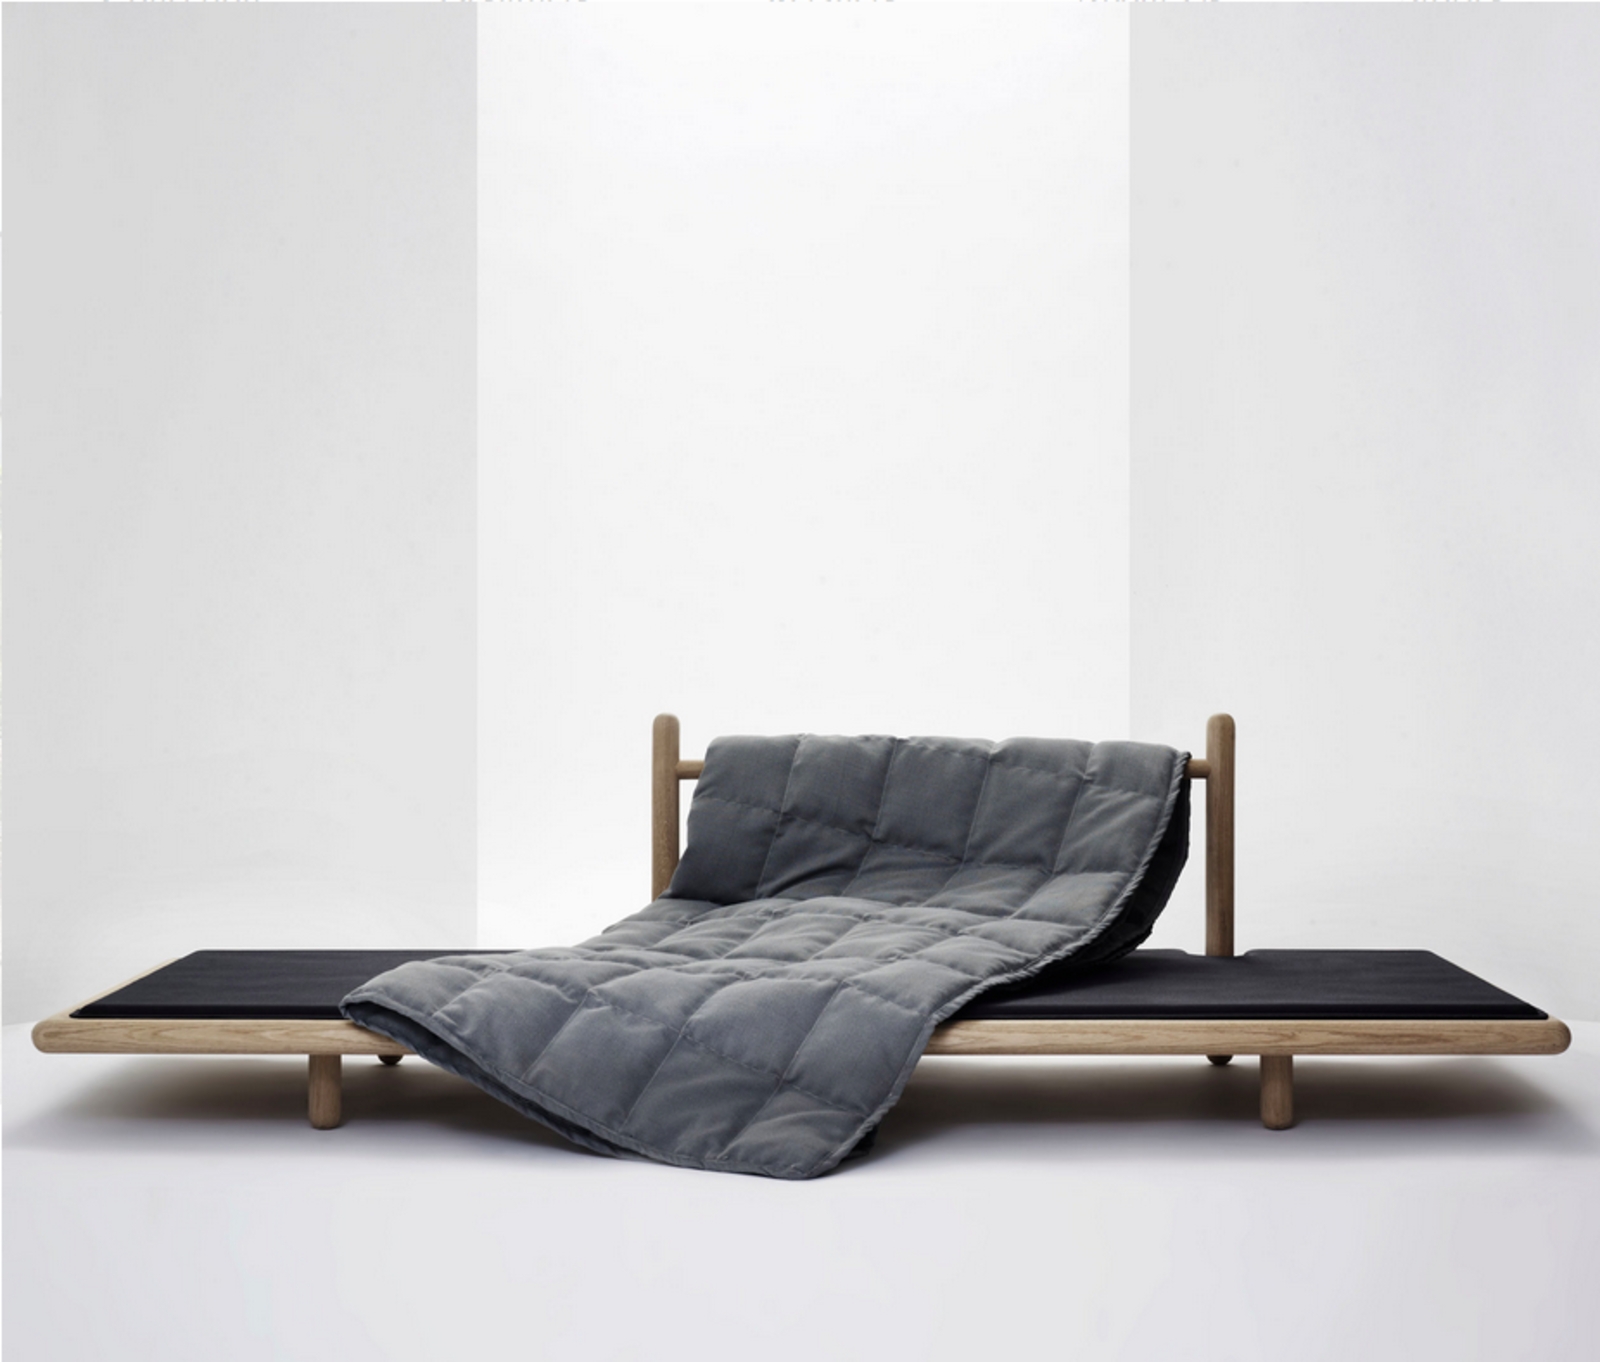 """Beddo, which is produced by the Danish outdoor furniture company Skagerak, means """"bed"""" in Japanese and was designed by Christina Liljenberg Halstrøm as the ultimate piece of indoor/outdoor resting furniture.  Photo 2 of 9 in Four Danish Designers You Need to Know Now"""